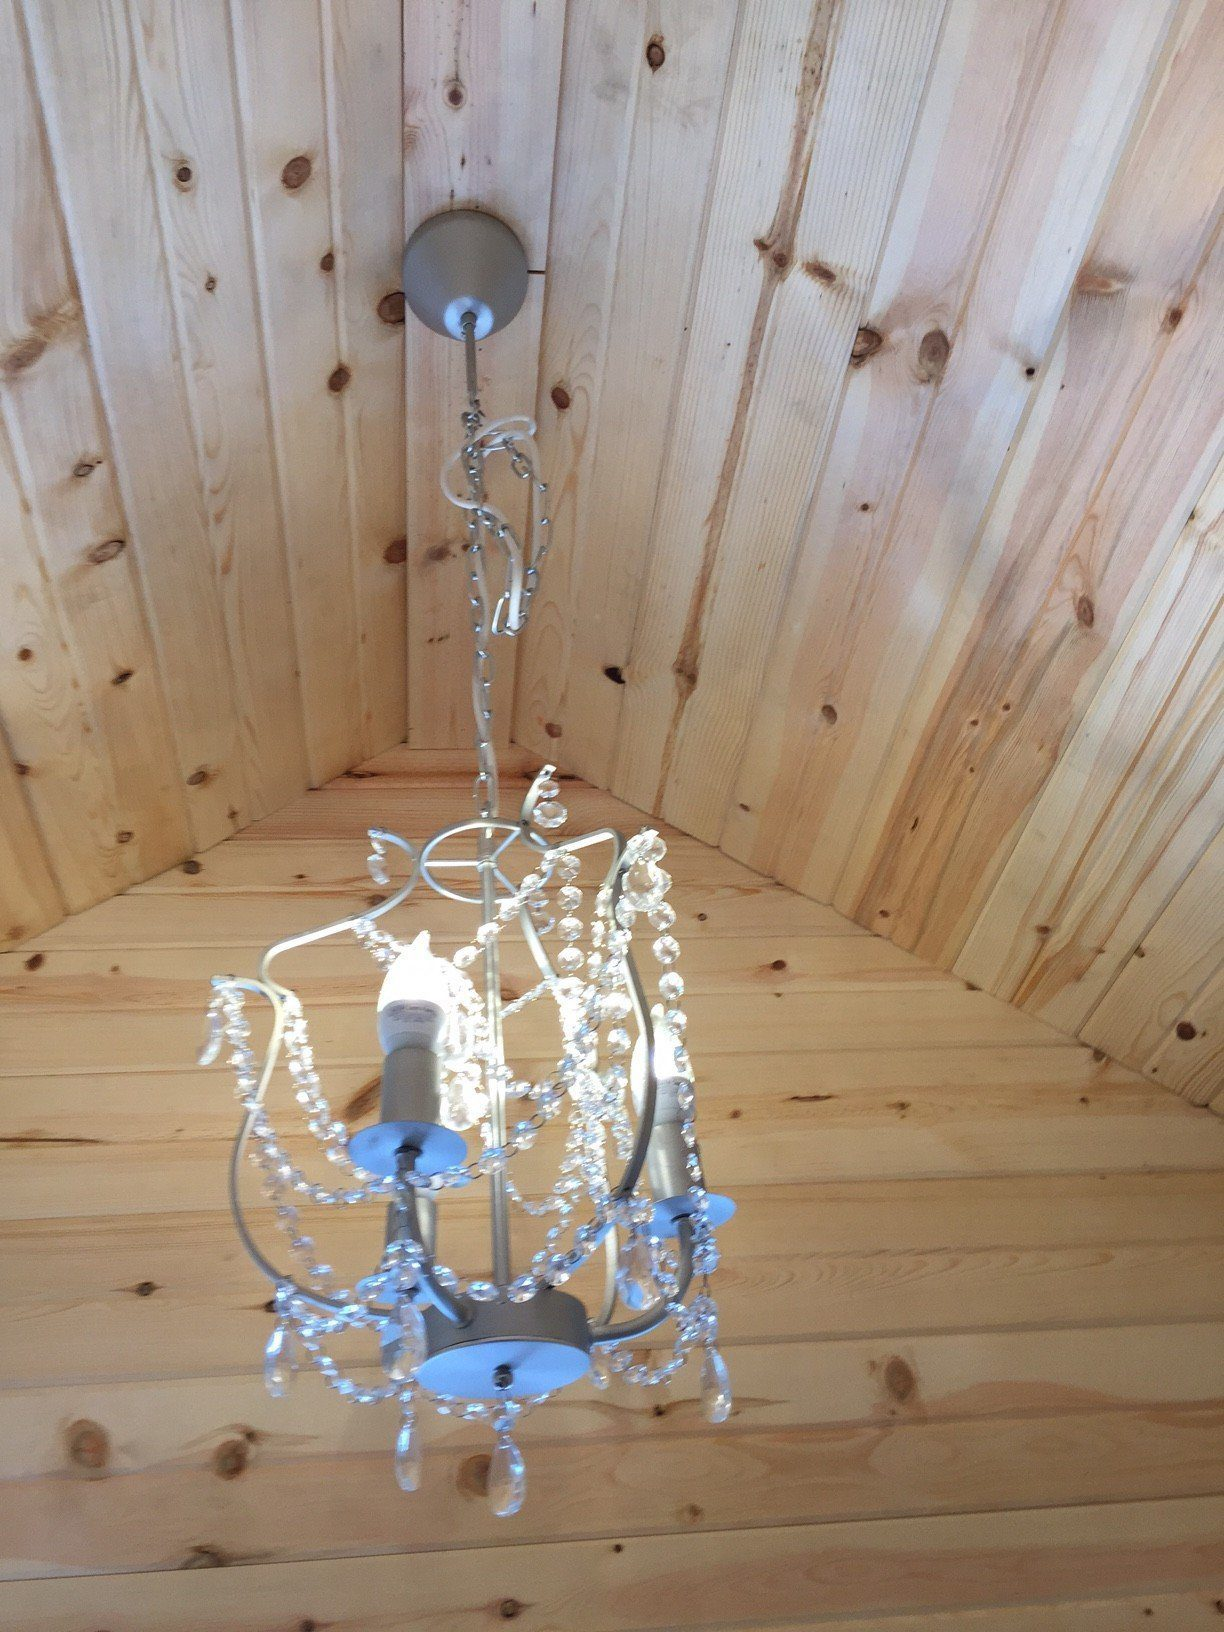 Rich sauna view of chandelier